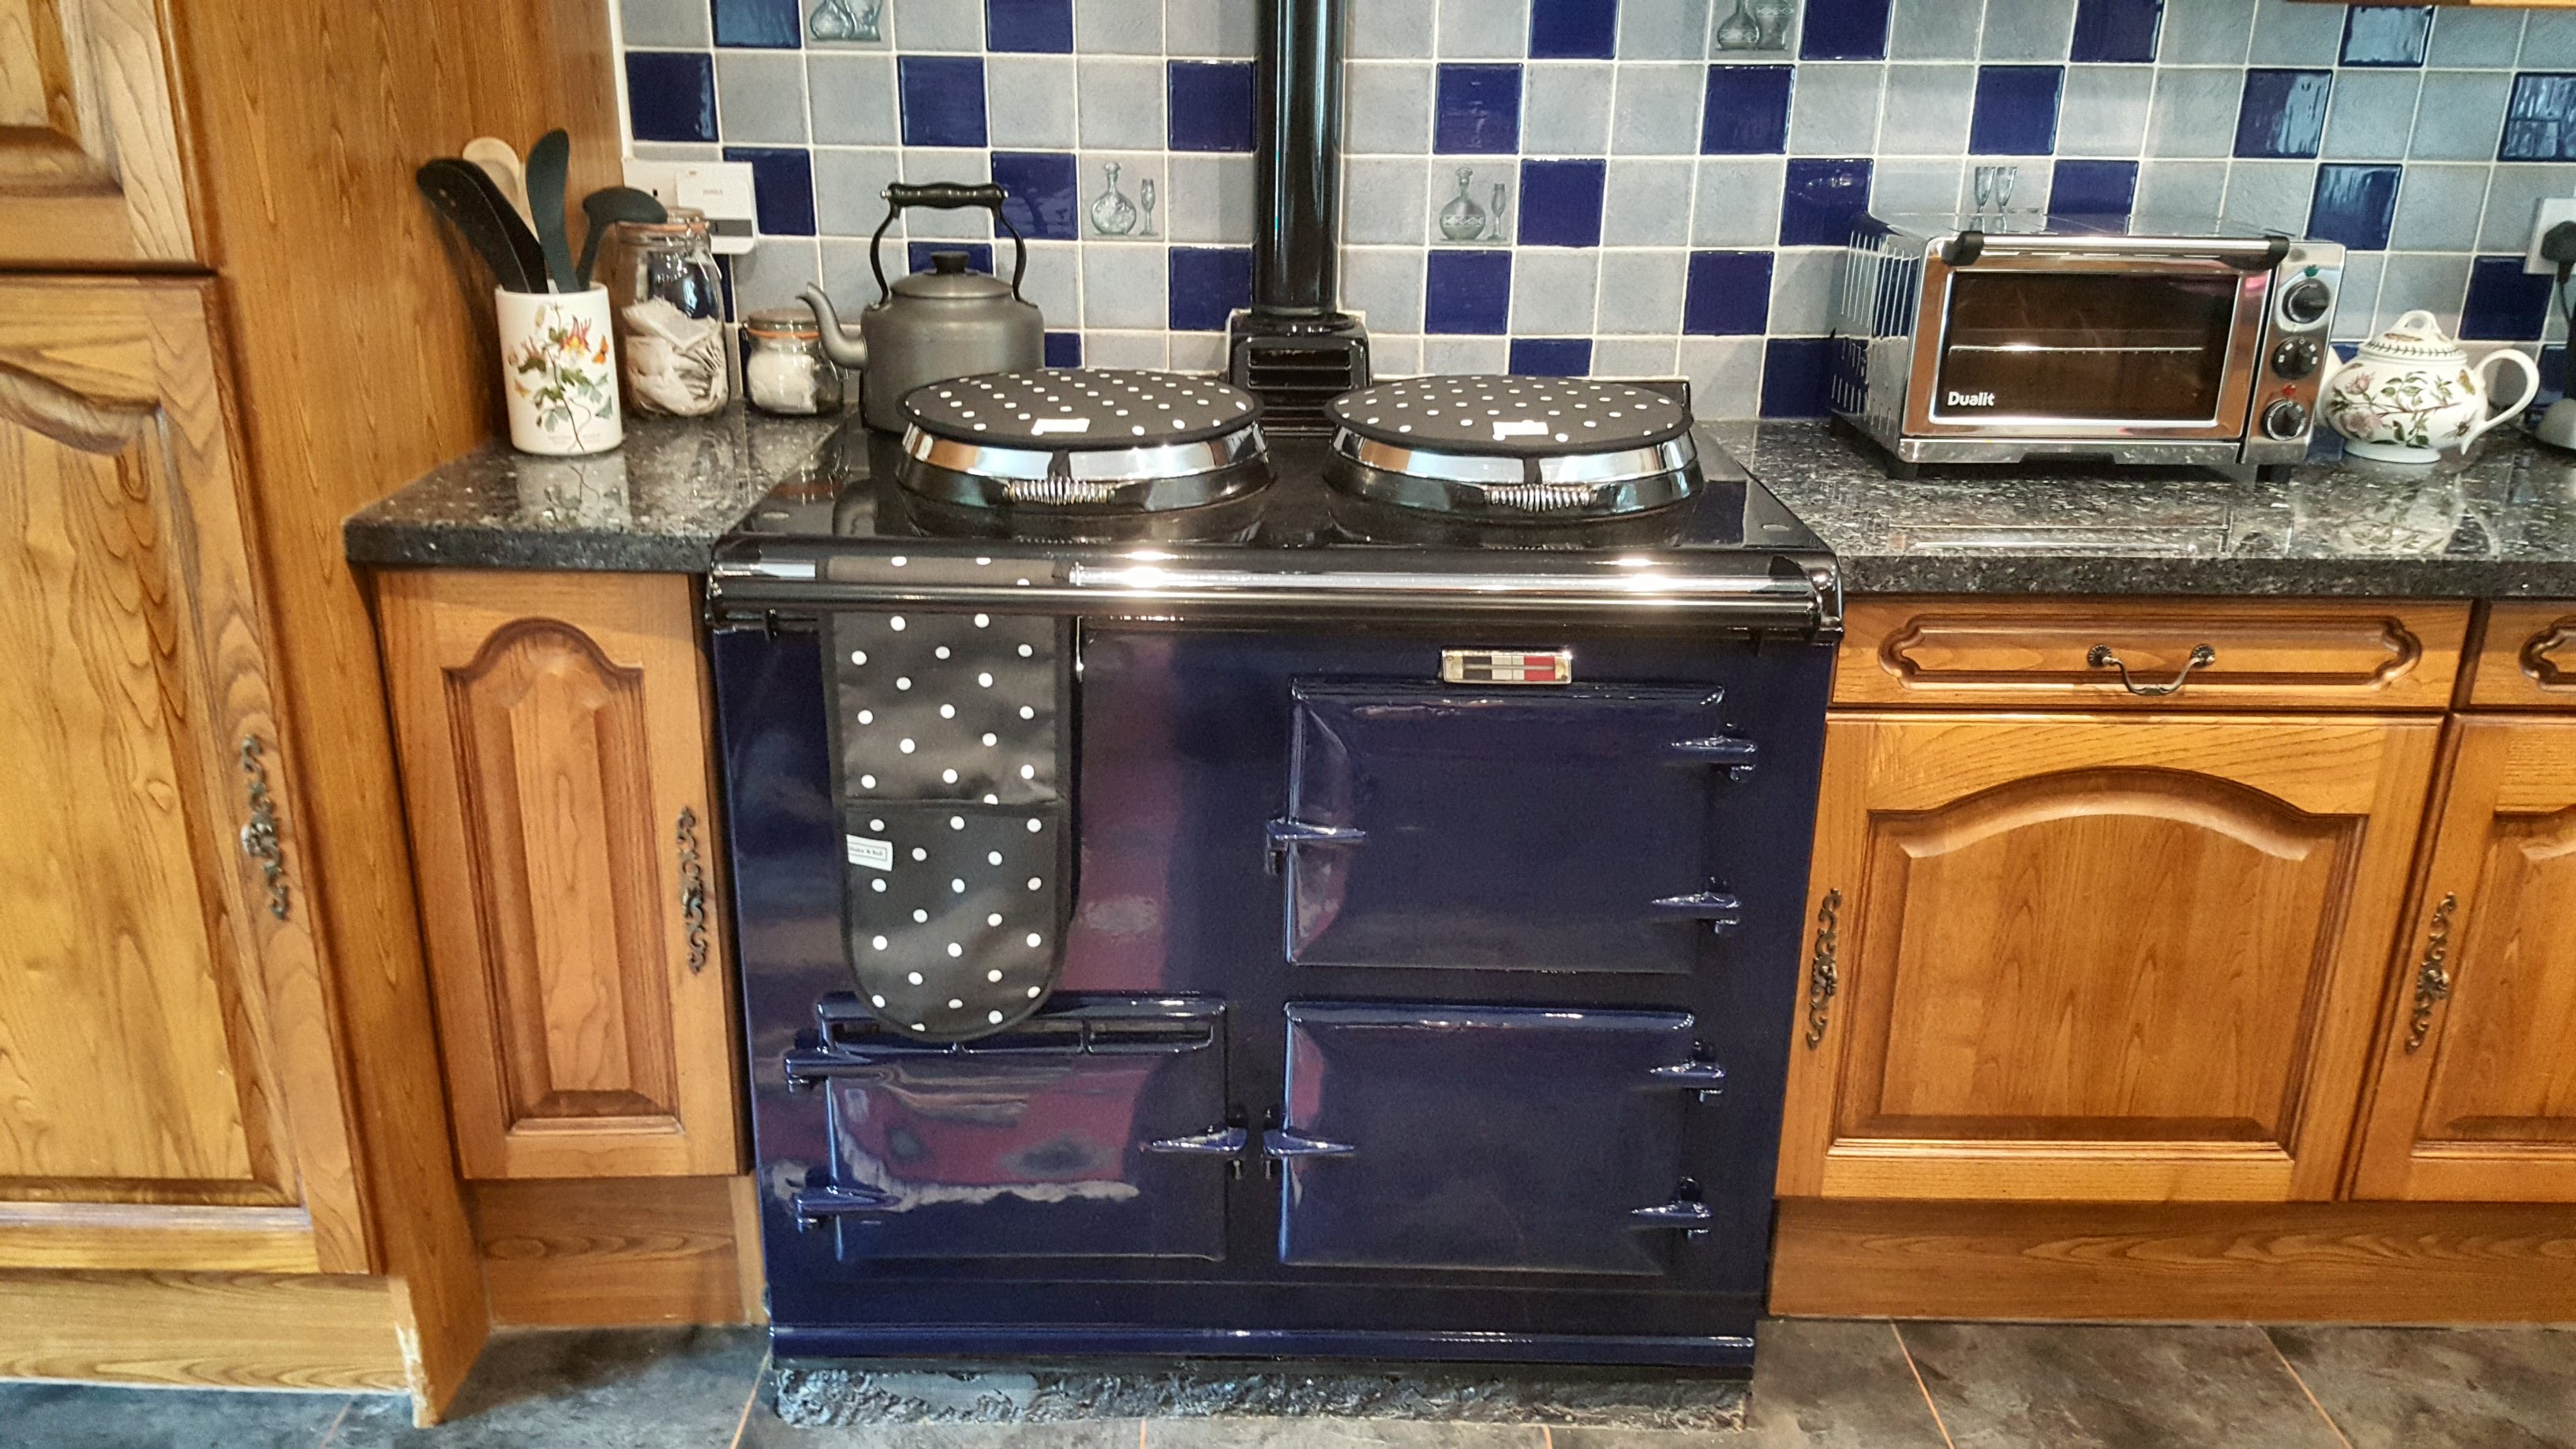 Blue Aga range cooker in wood kitchen